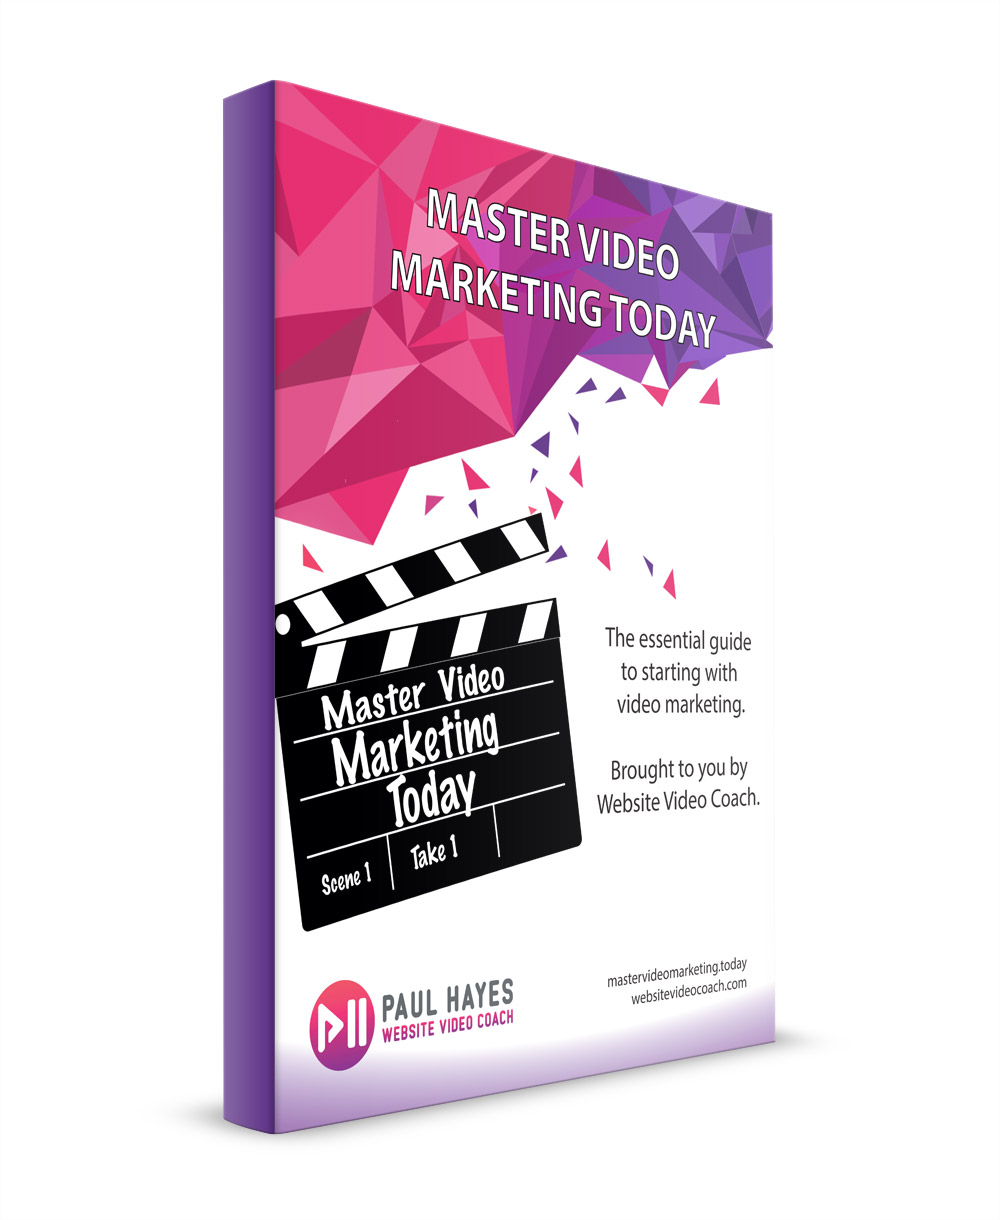 Master Video Marketing Today